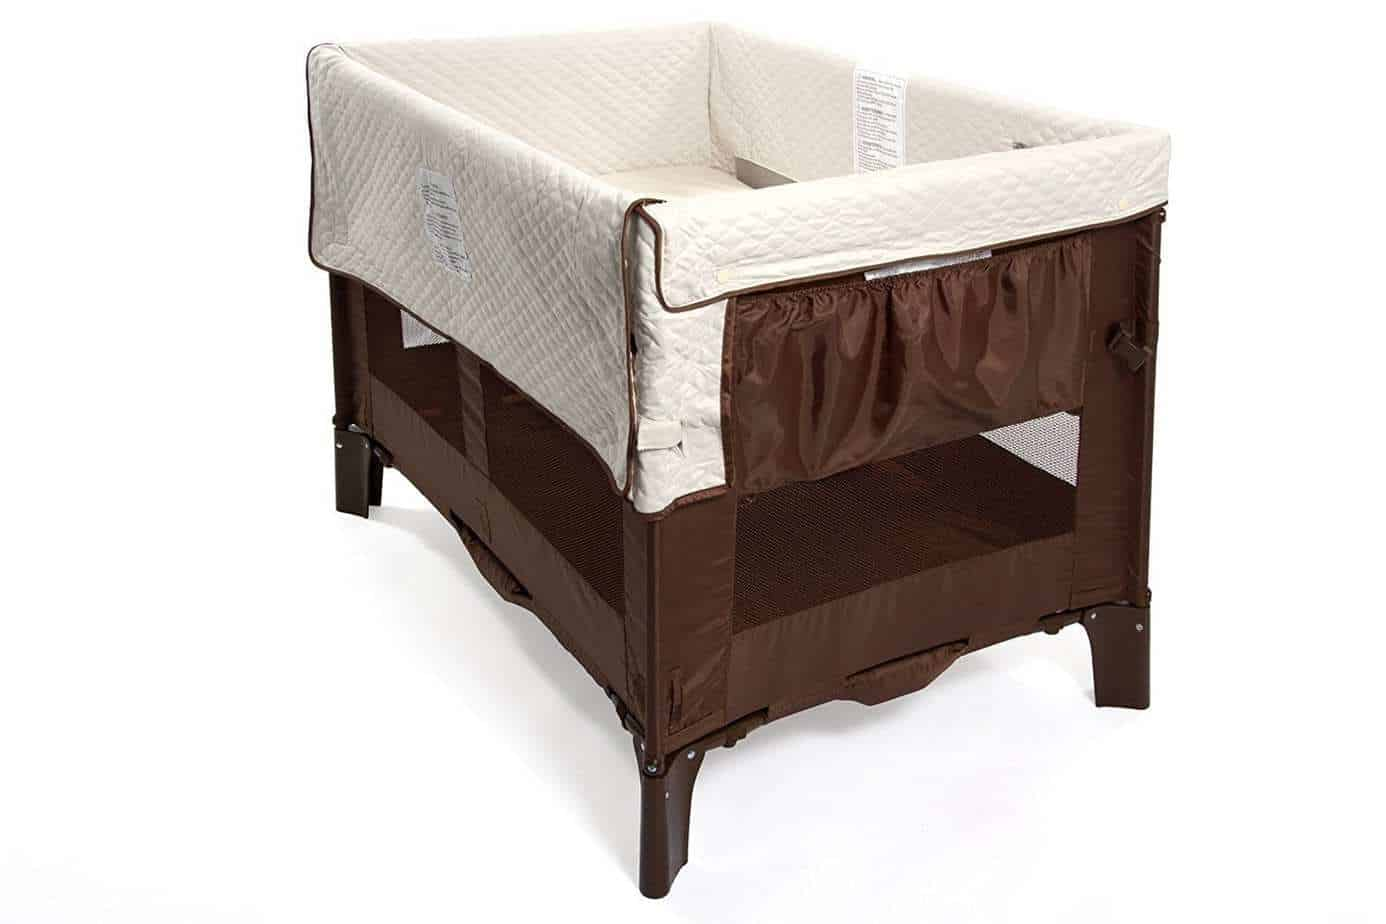 Arms reach co sleeper review will this be the product of for Arm s reach co sleeper